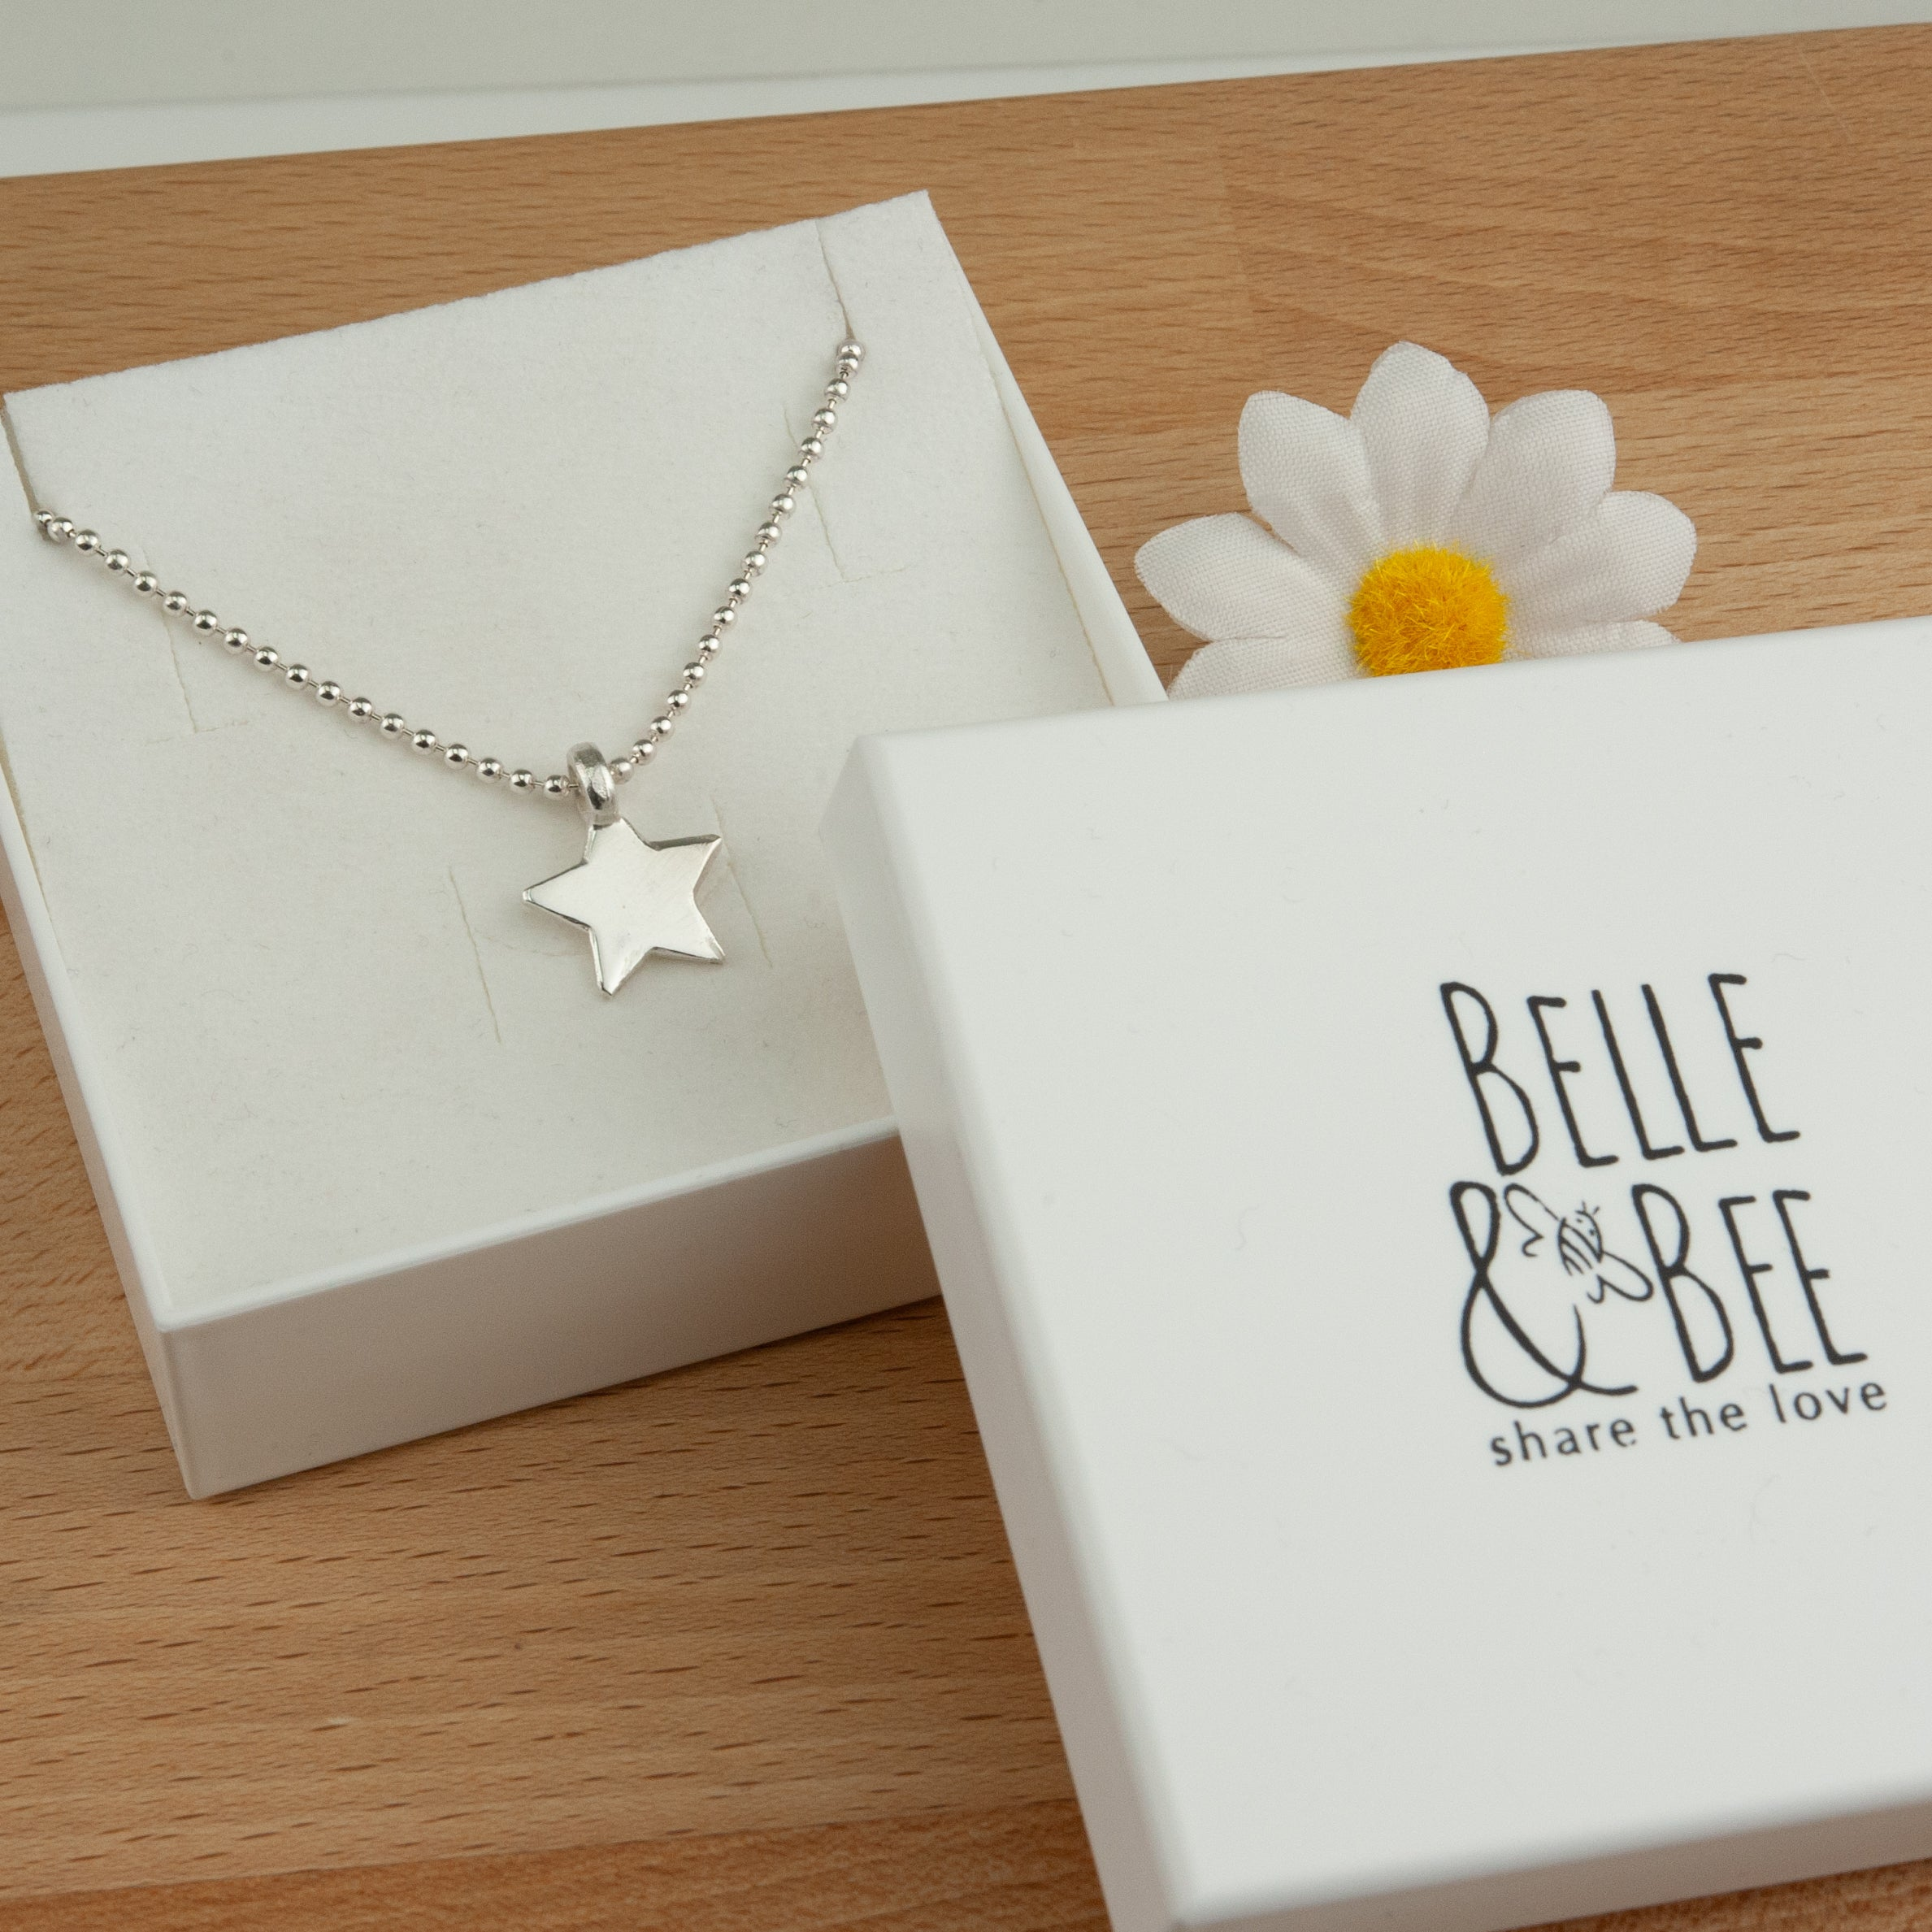 Belle & Bee sterling silver star necklaces